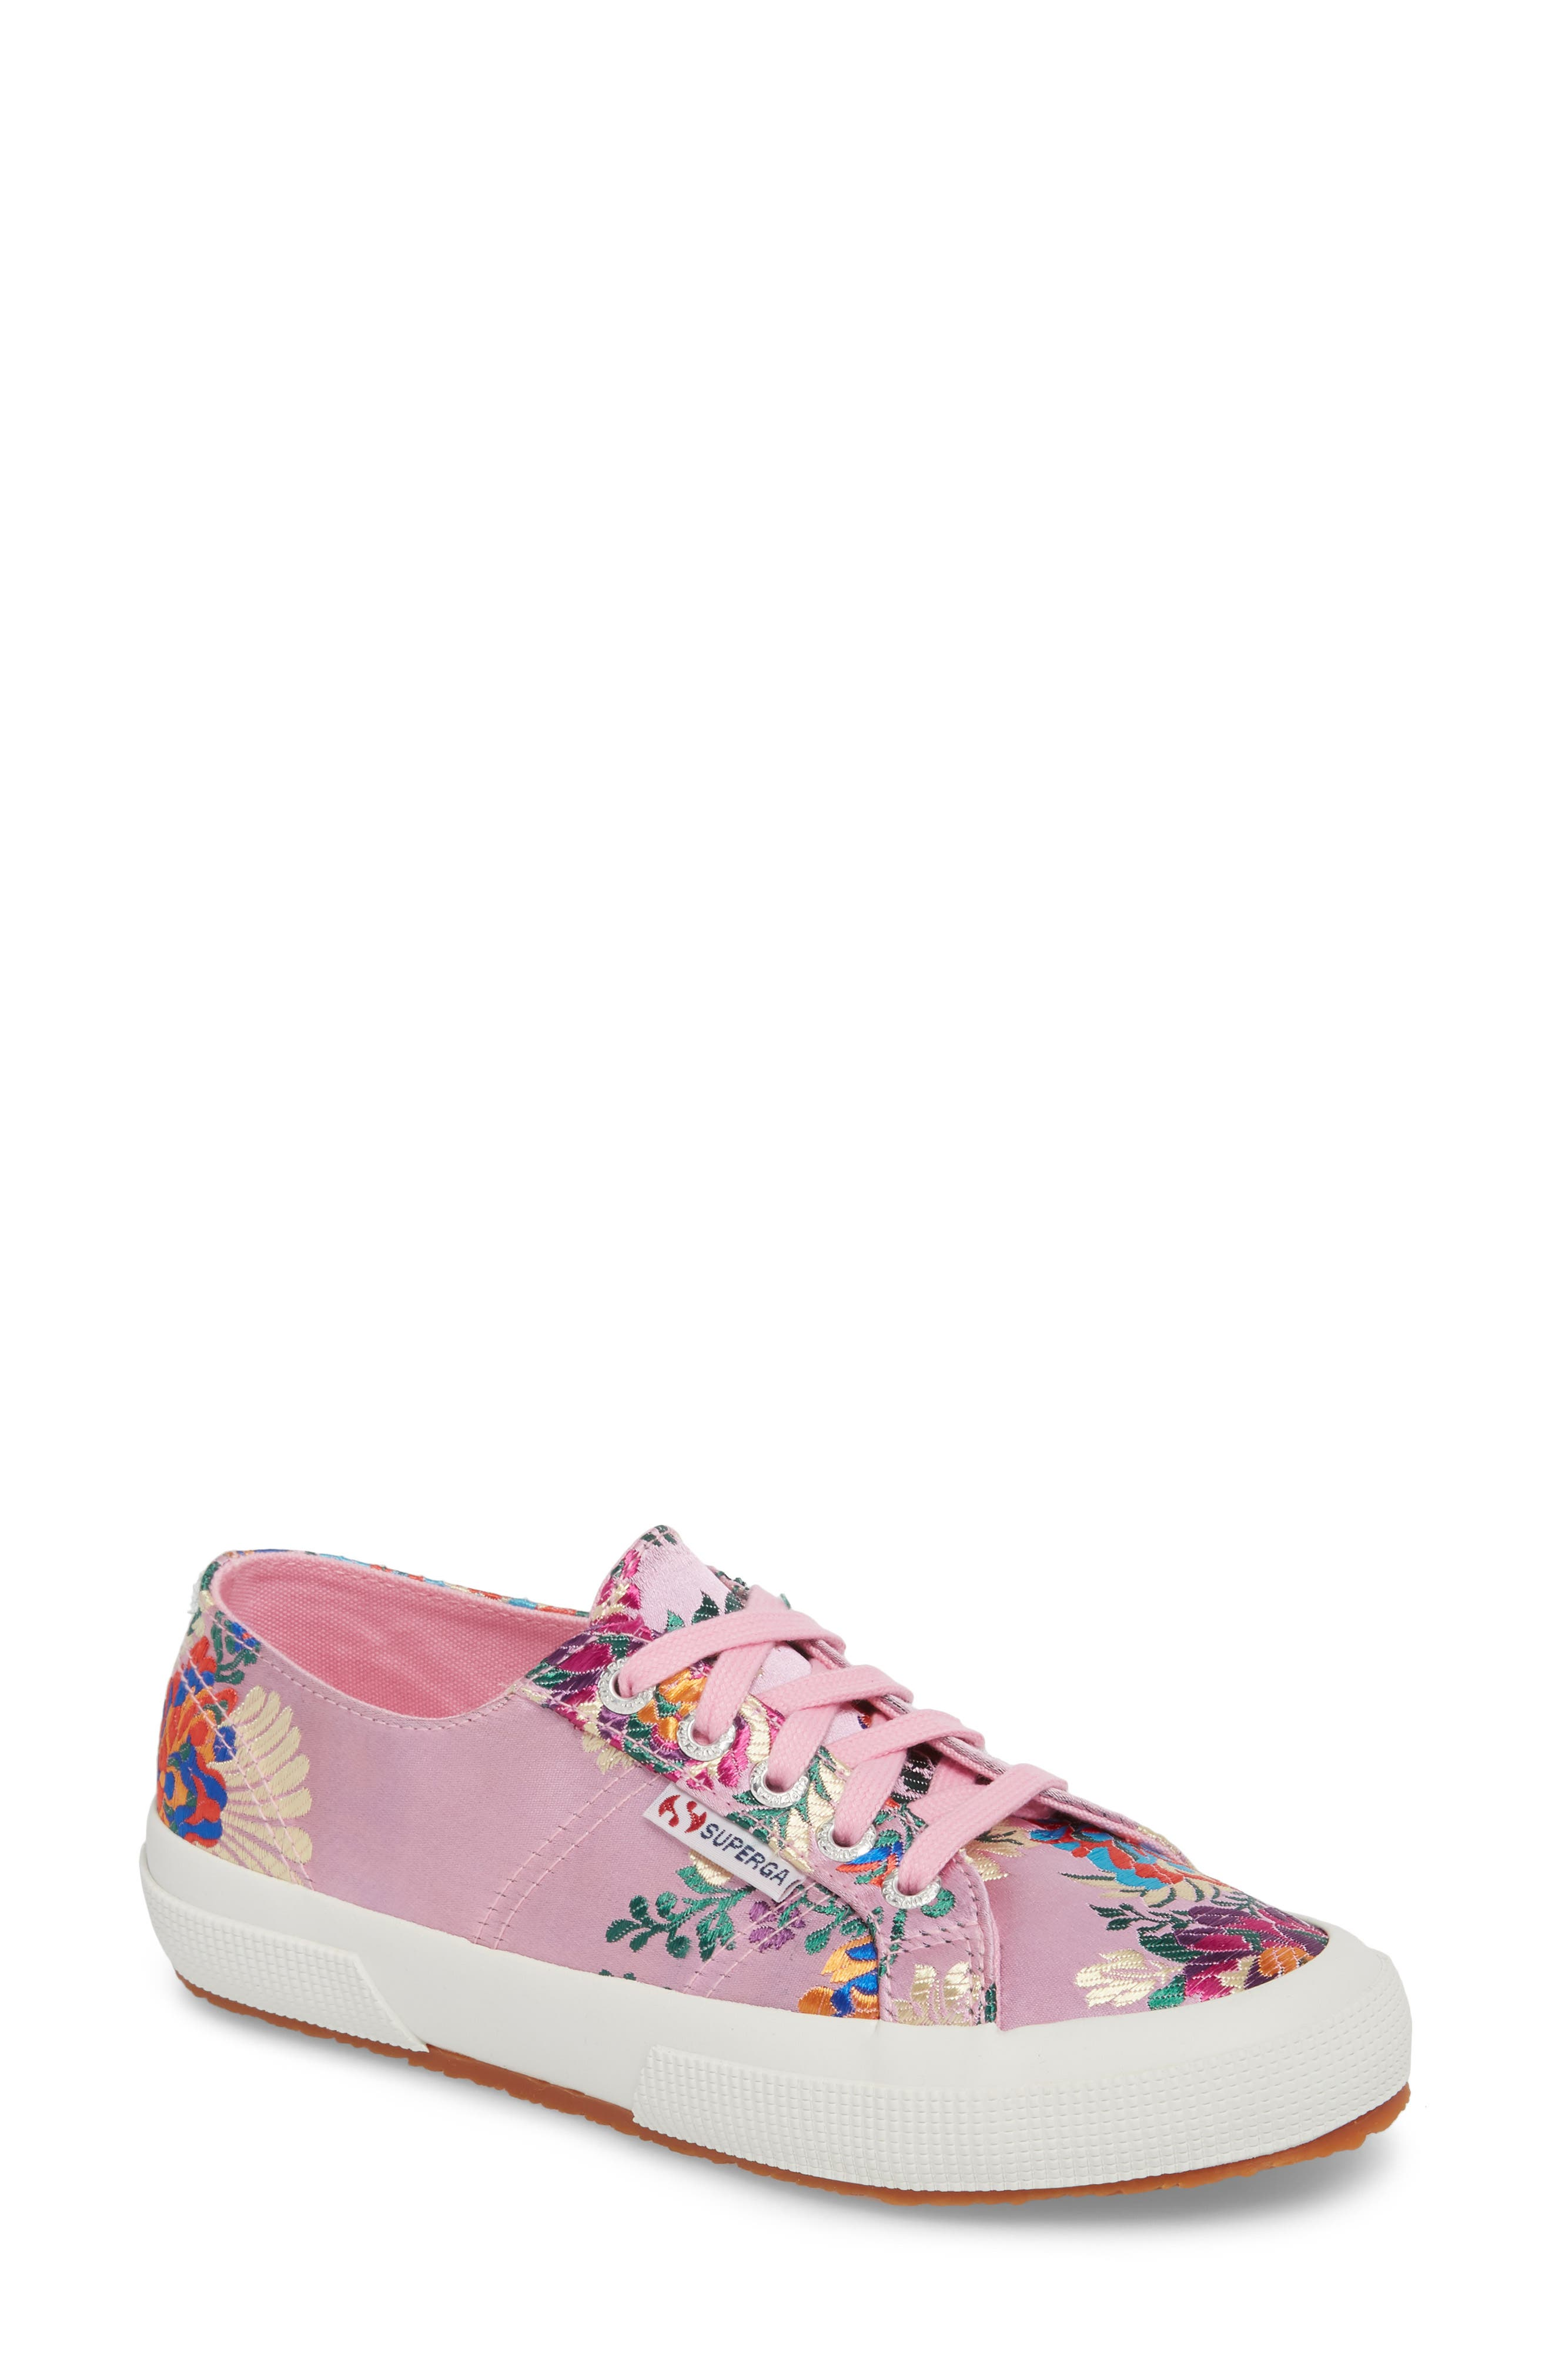 2750 Embroidered Sneaker,                             Main thumbnail 1, color,                             Pink